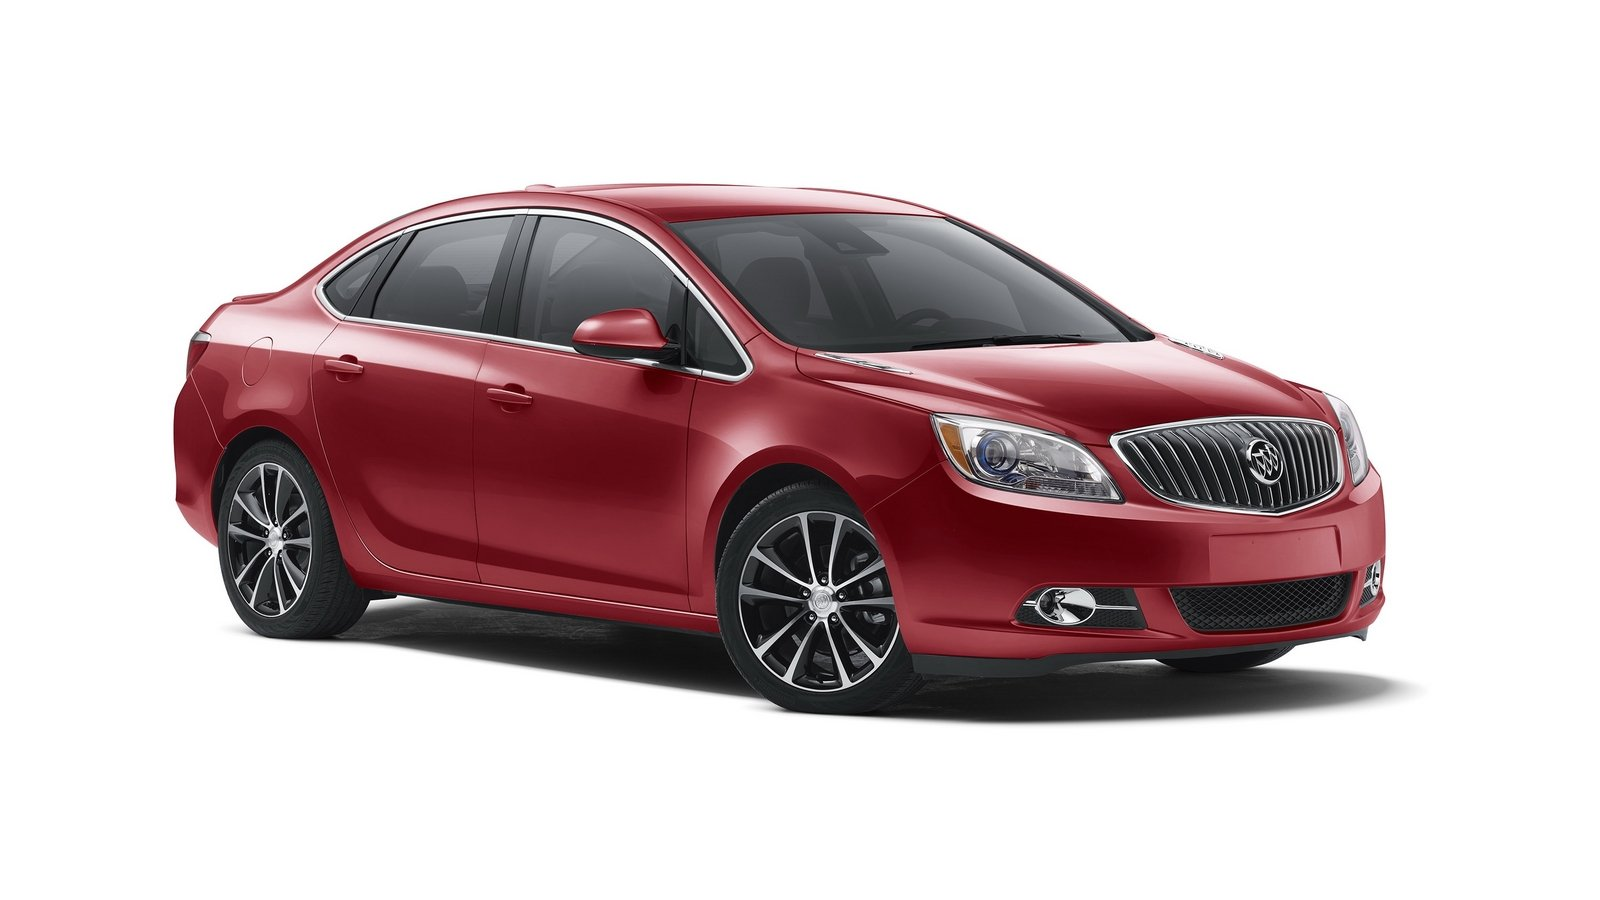 2016 buick verano picture 640141 car review top speed. Black Bedroom Furniture Sets. Home Design Ideas